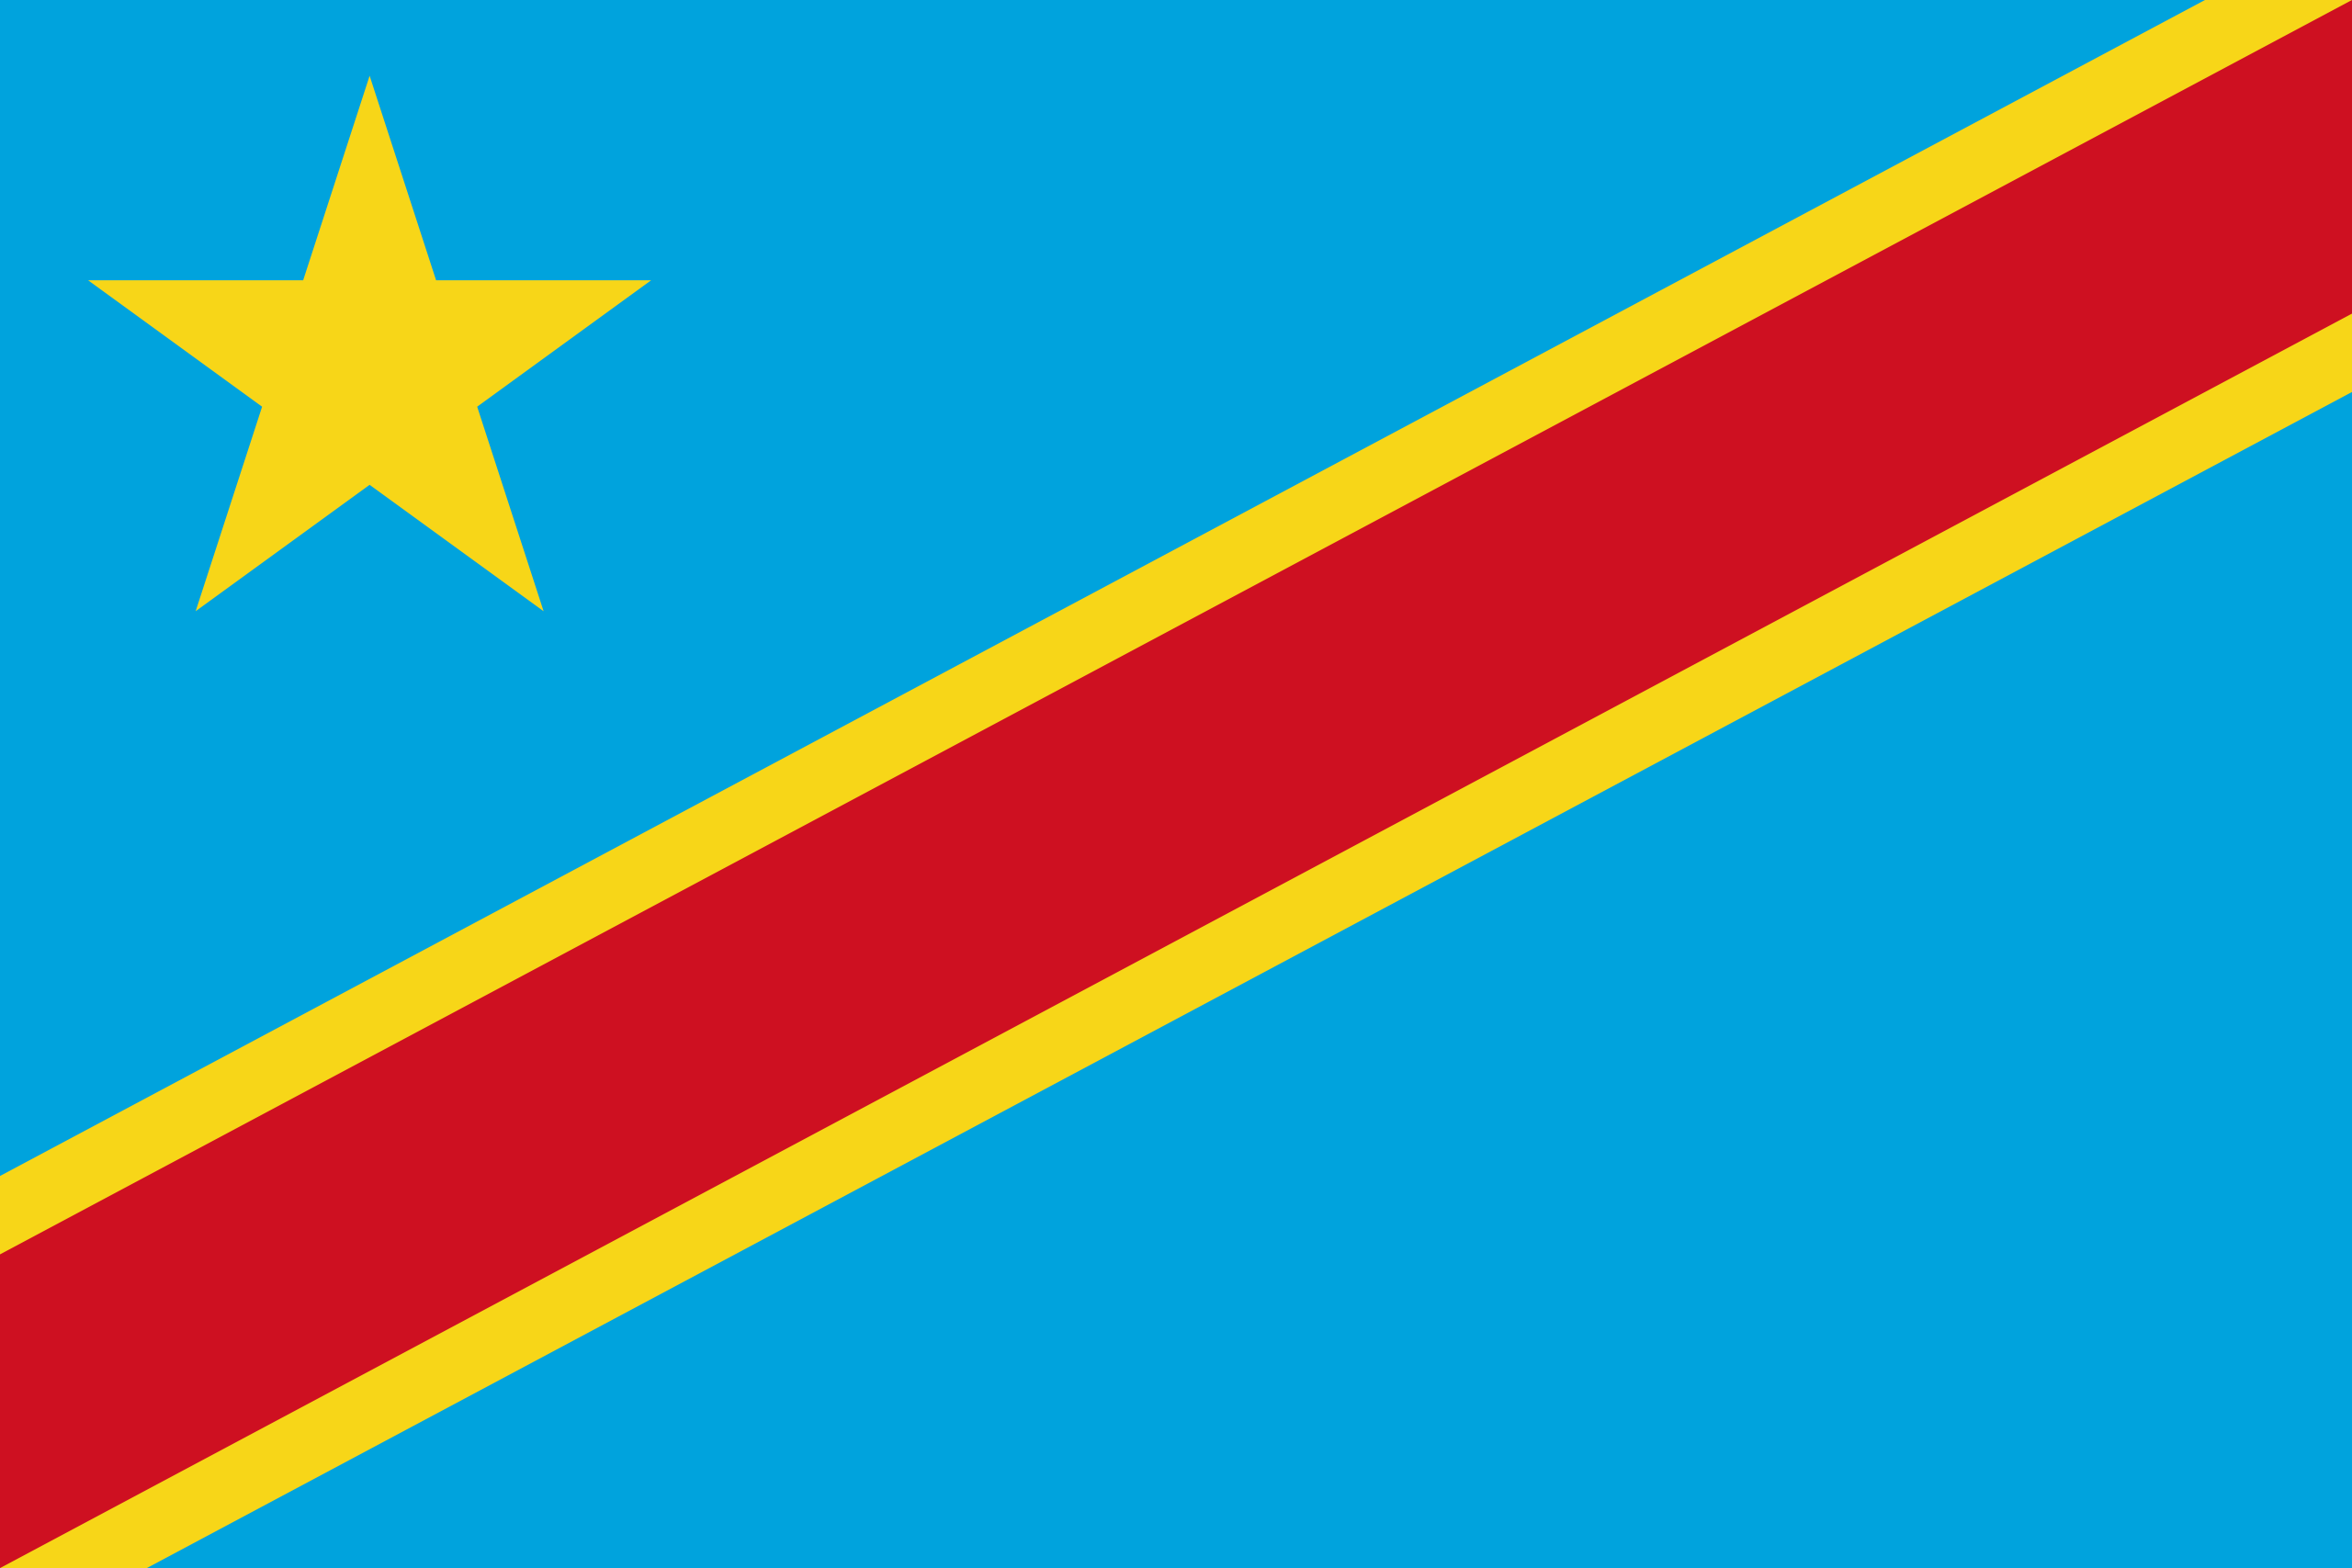 EMBASSY AND CONSULATE OF THE REPUBLIC OF CONGO